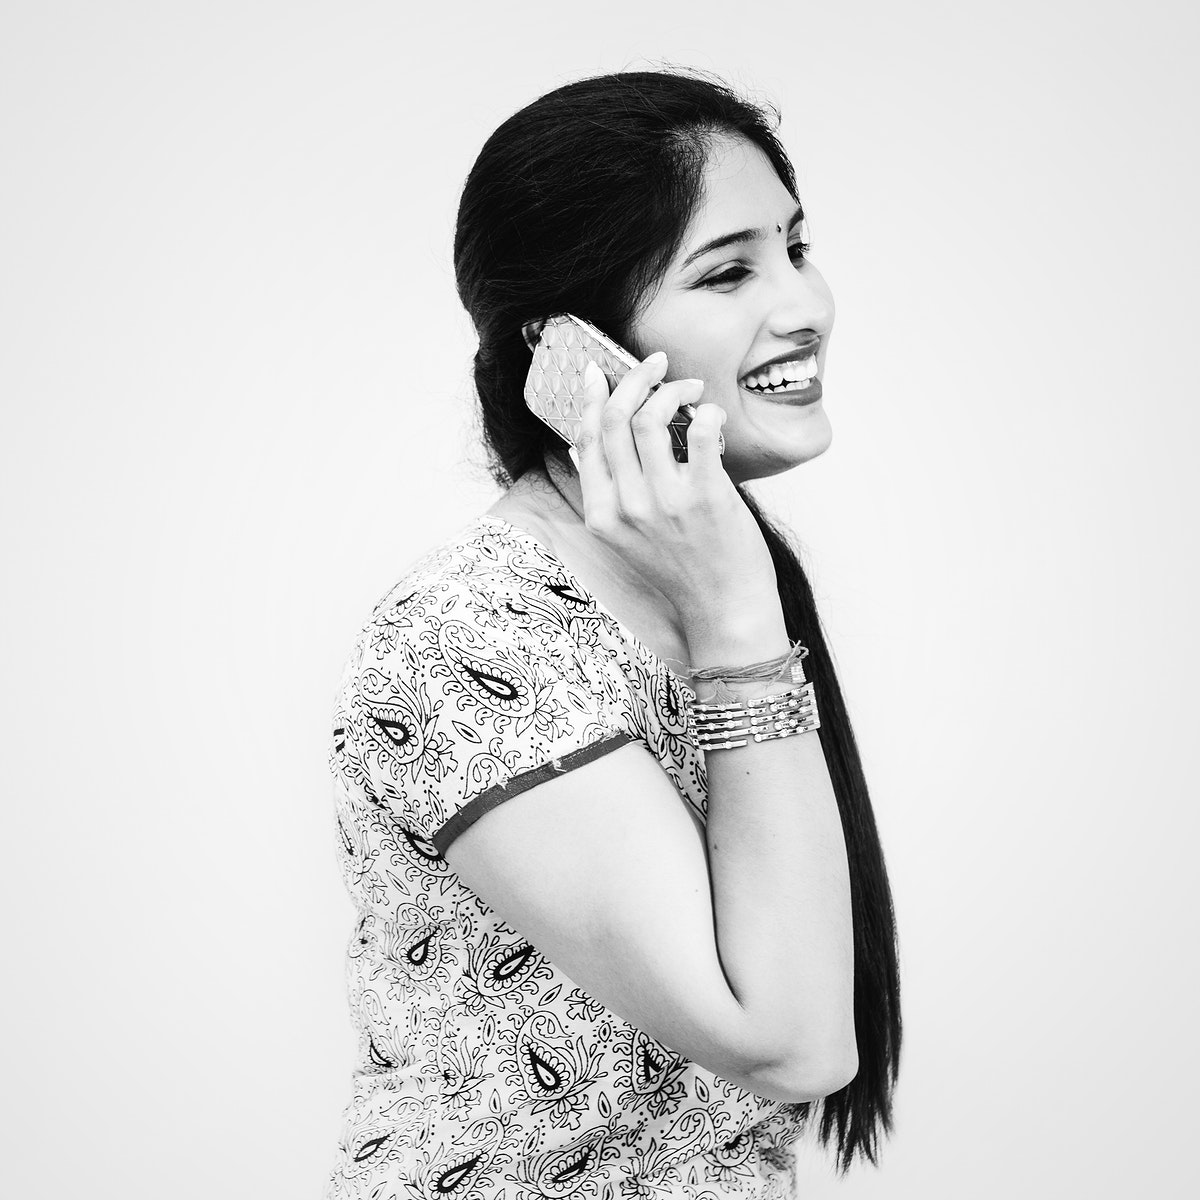 A young Indian woman talking on the phone